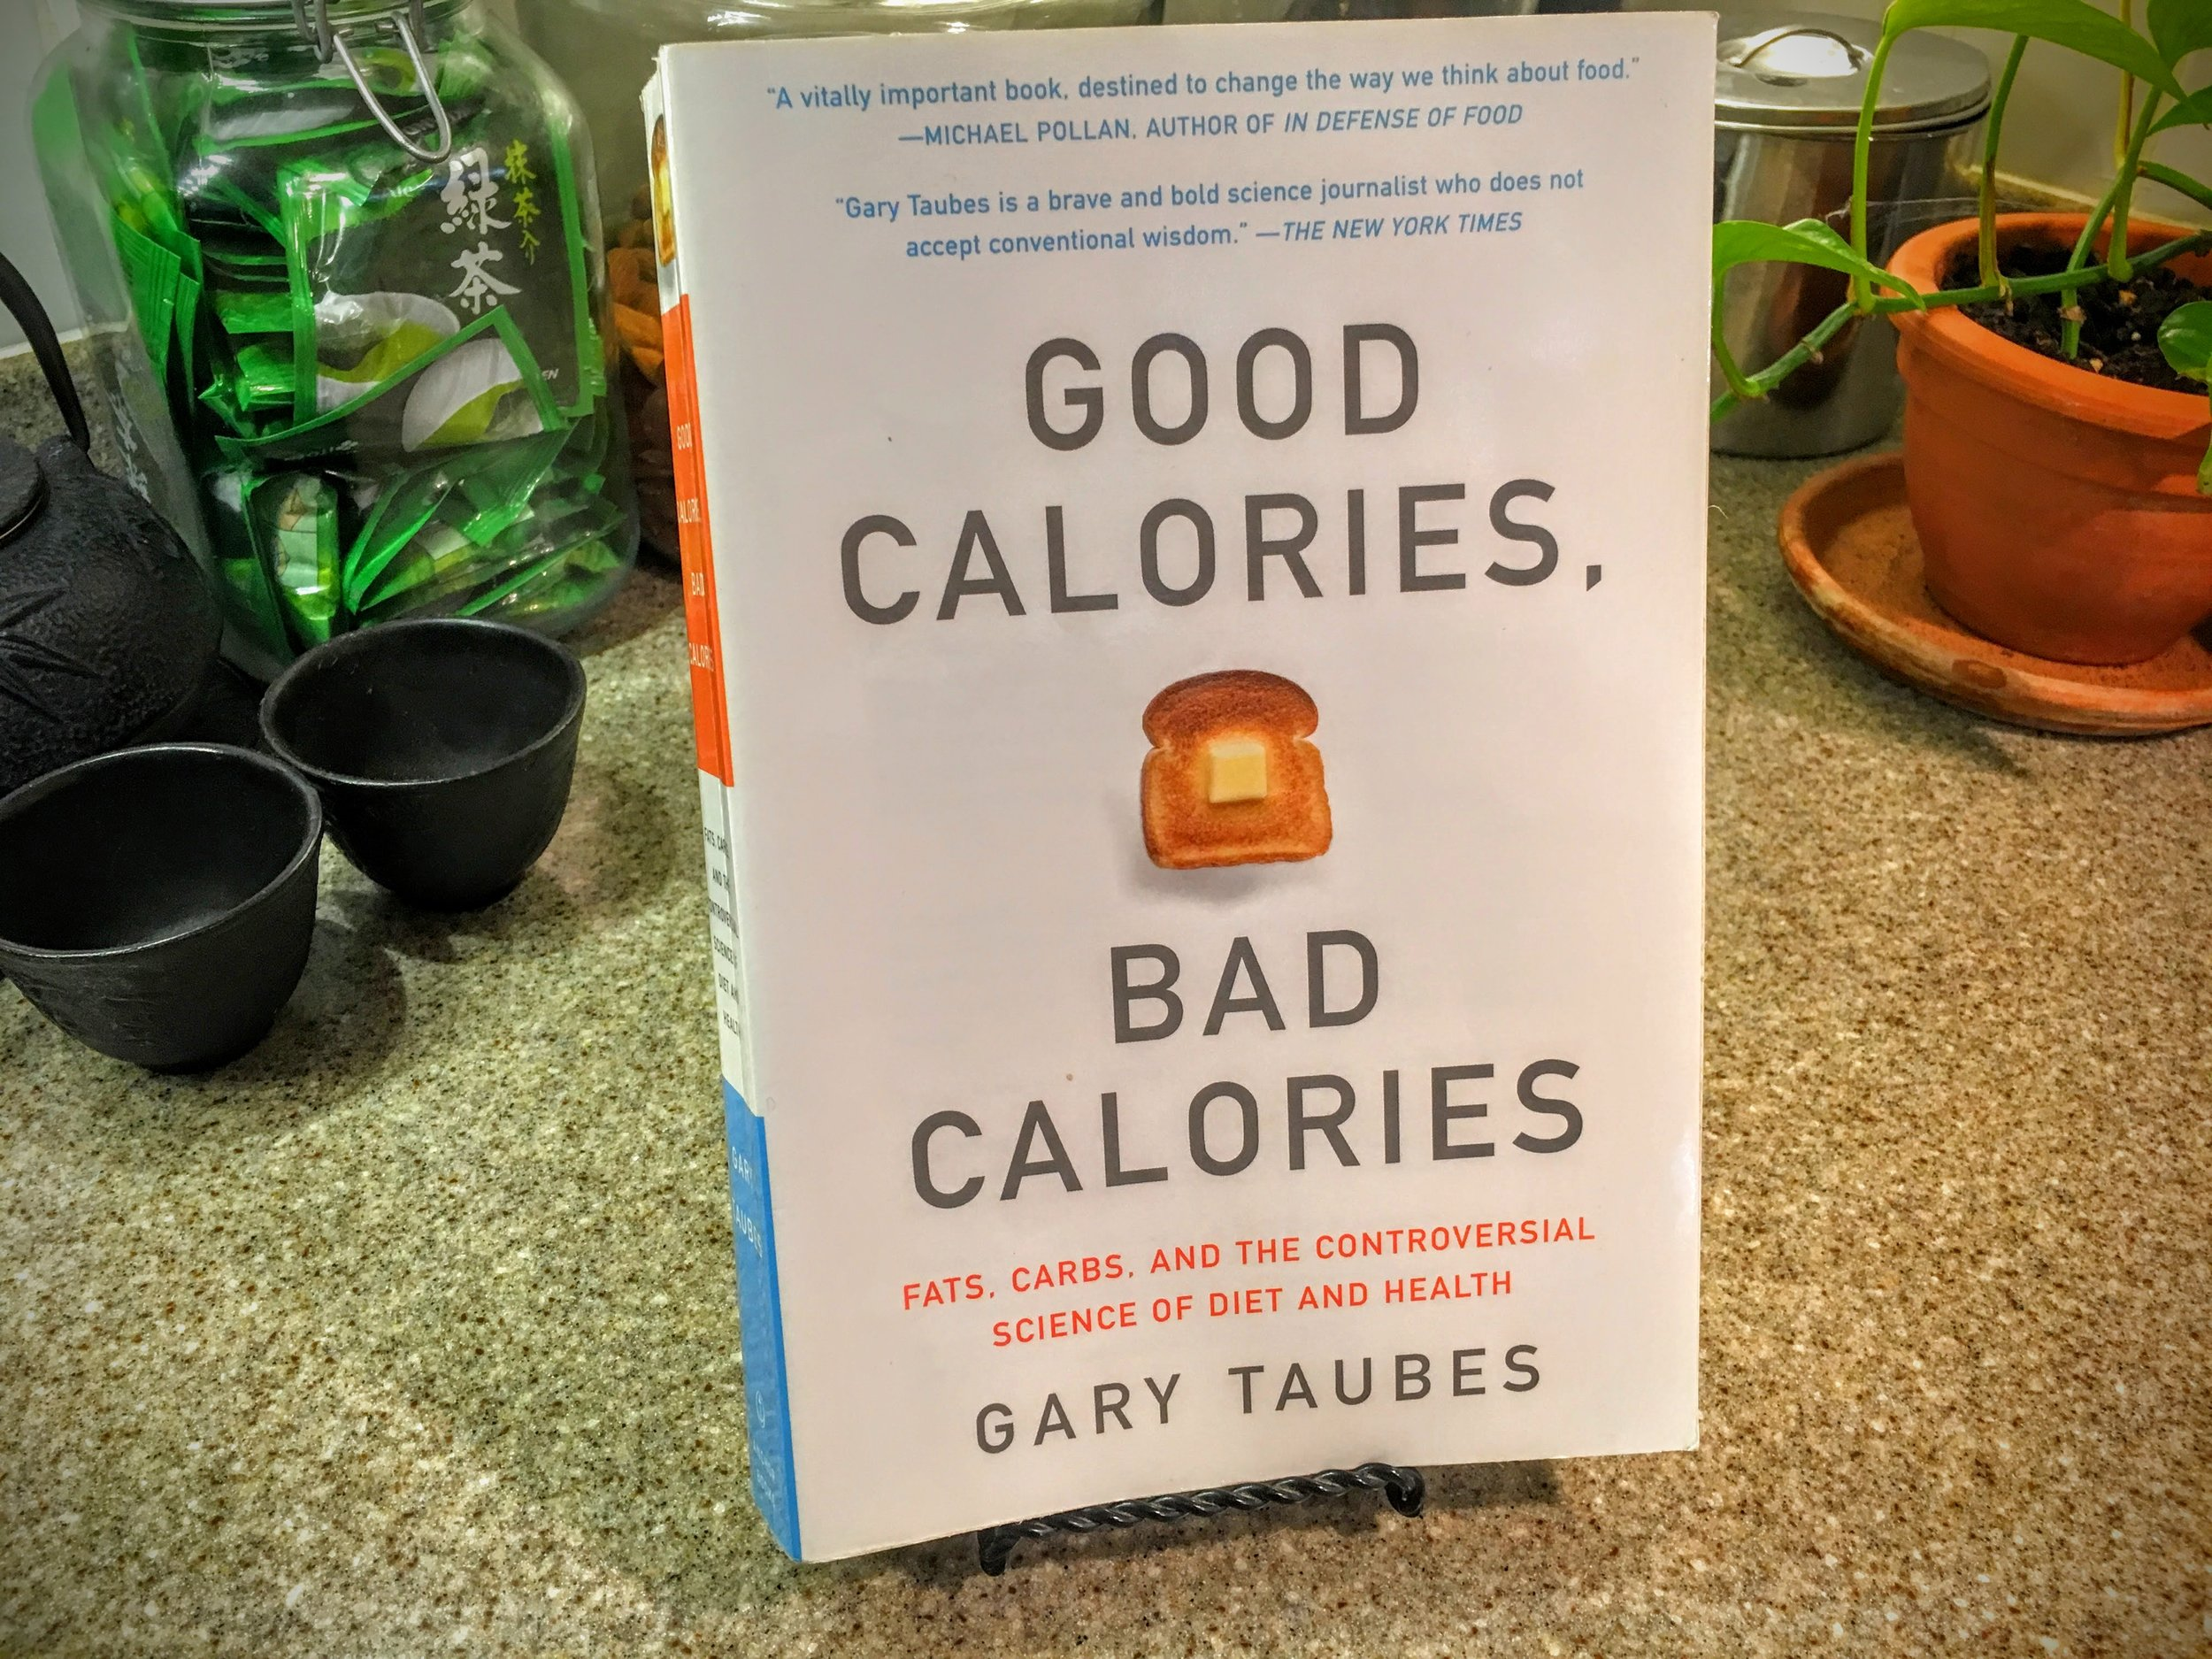 Good Calories, Bad Calories    IT TOOK ME ALL OF 9 MONTHS TO GET THROUGH THIS VERY DENSE BOOK. WORTH EVERY PAGE. IT EXPLAINS HOW ROTTEN SCIENCE AND POLITICS LED TO THE LAST 60 YEARS OF BAD NUTRITIONAL ADVICE AND, SUBSEQUENTLY, A GENERATION PLAGUED BY OBESITY AND TYPE 2 DIABETES. HUNKER DOWN AND PREPARE TO SPEND SOME TIME WITH THIS BOOK. AGAIN, IT'S WORTH IT.